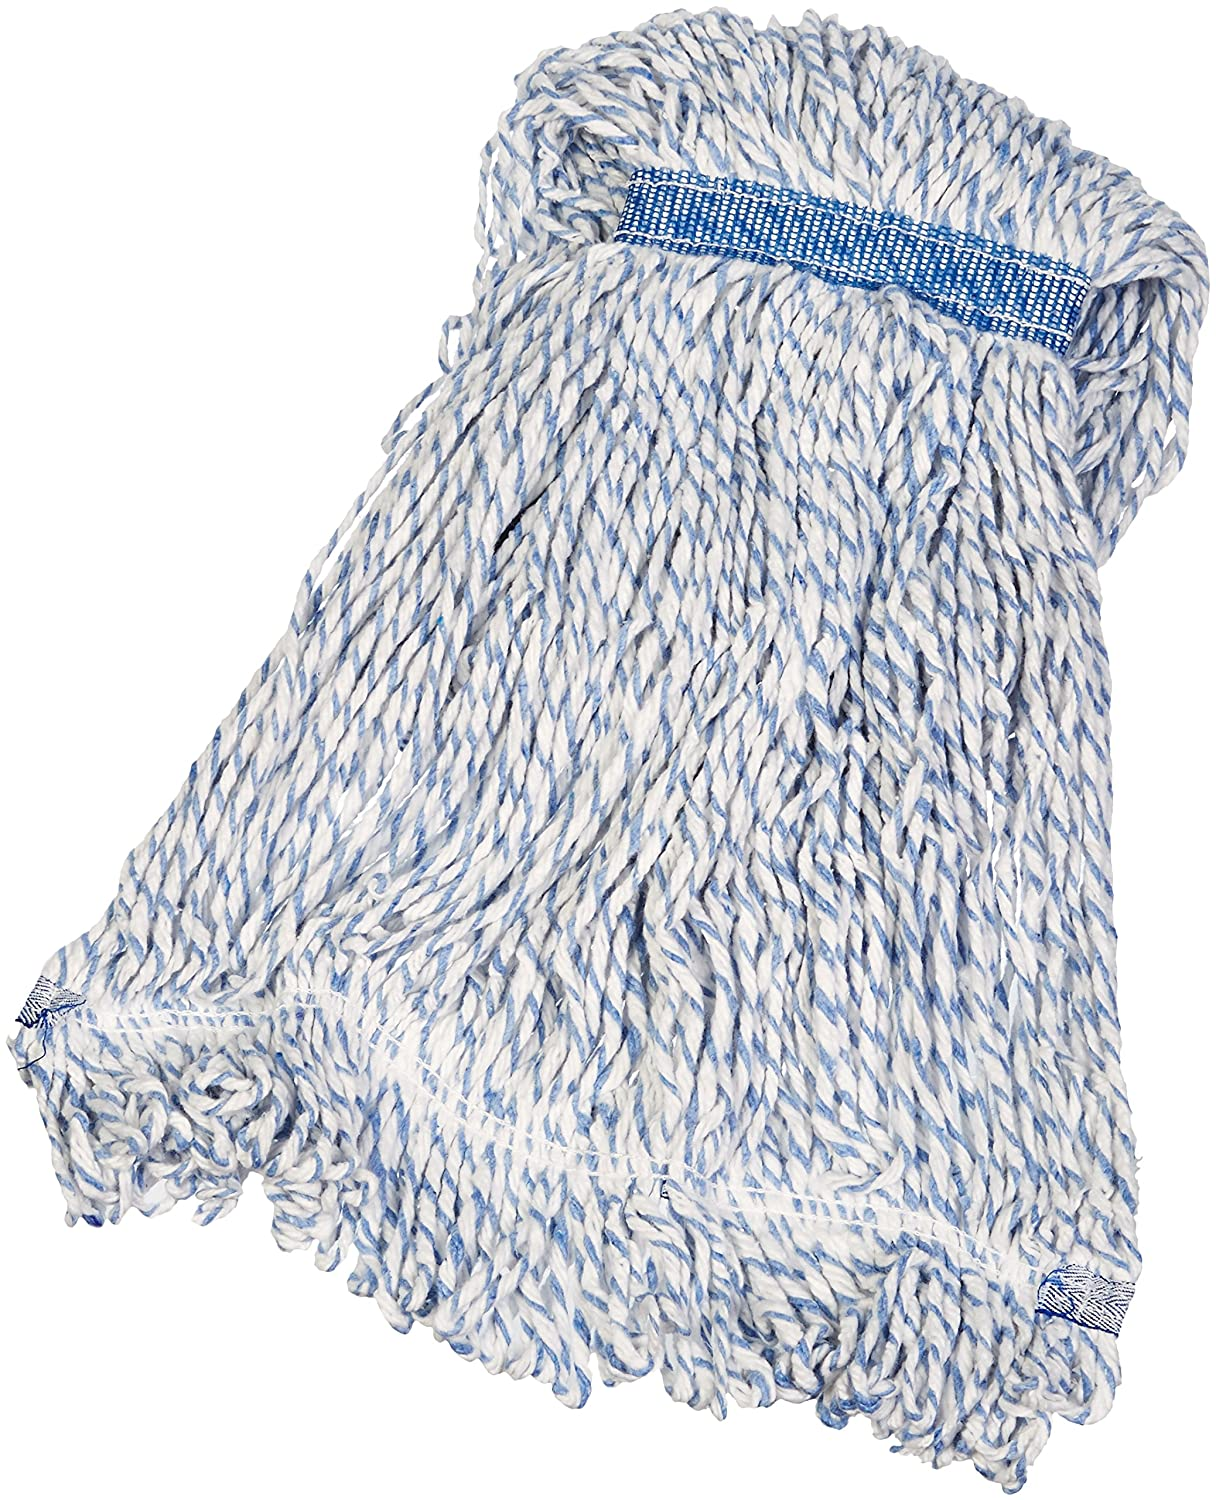 AmazonBasics Loop-End Rayon Finish Mop Head, 1.25-Inch Headband, Large - 6-Pack PBH-107660 1